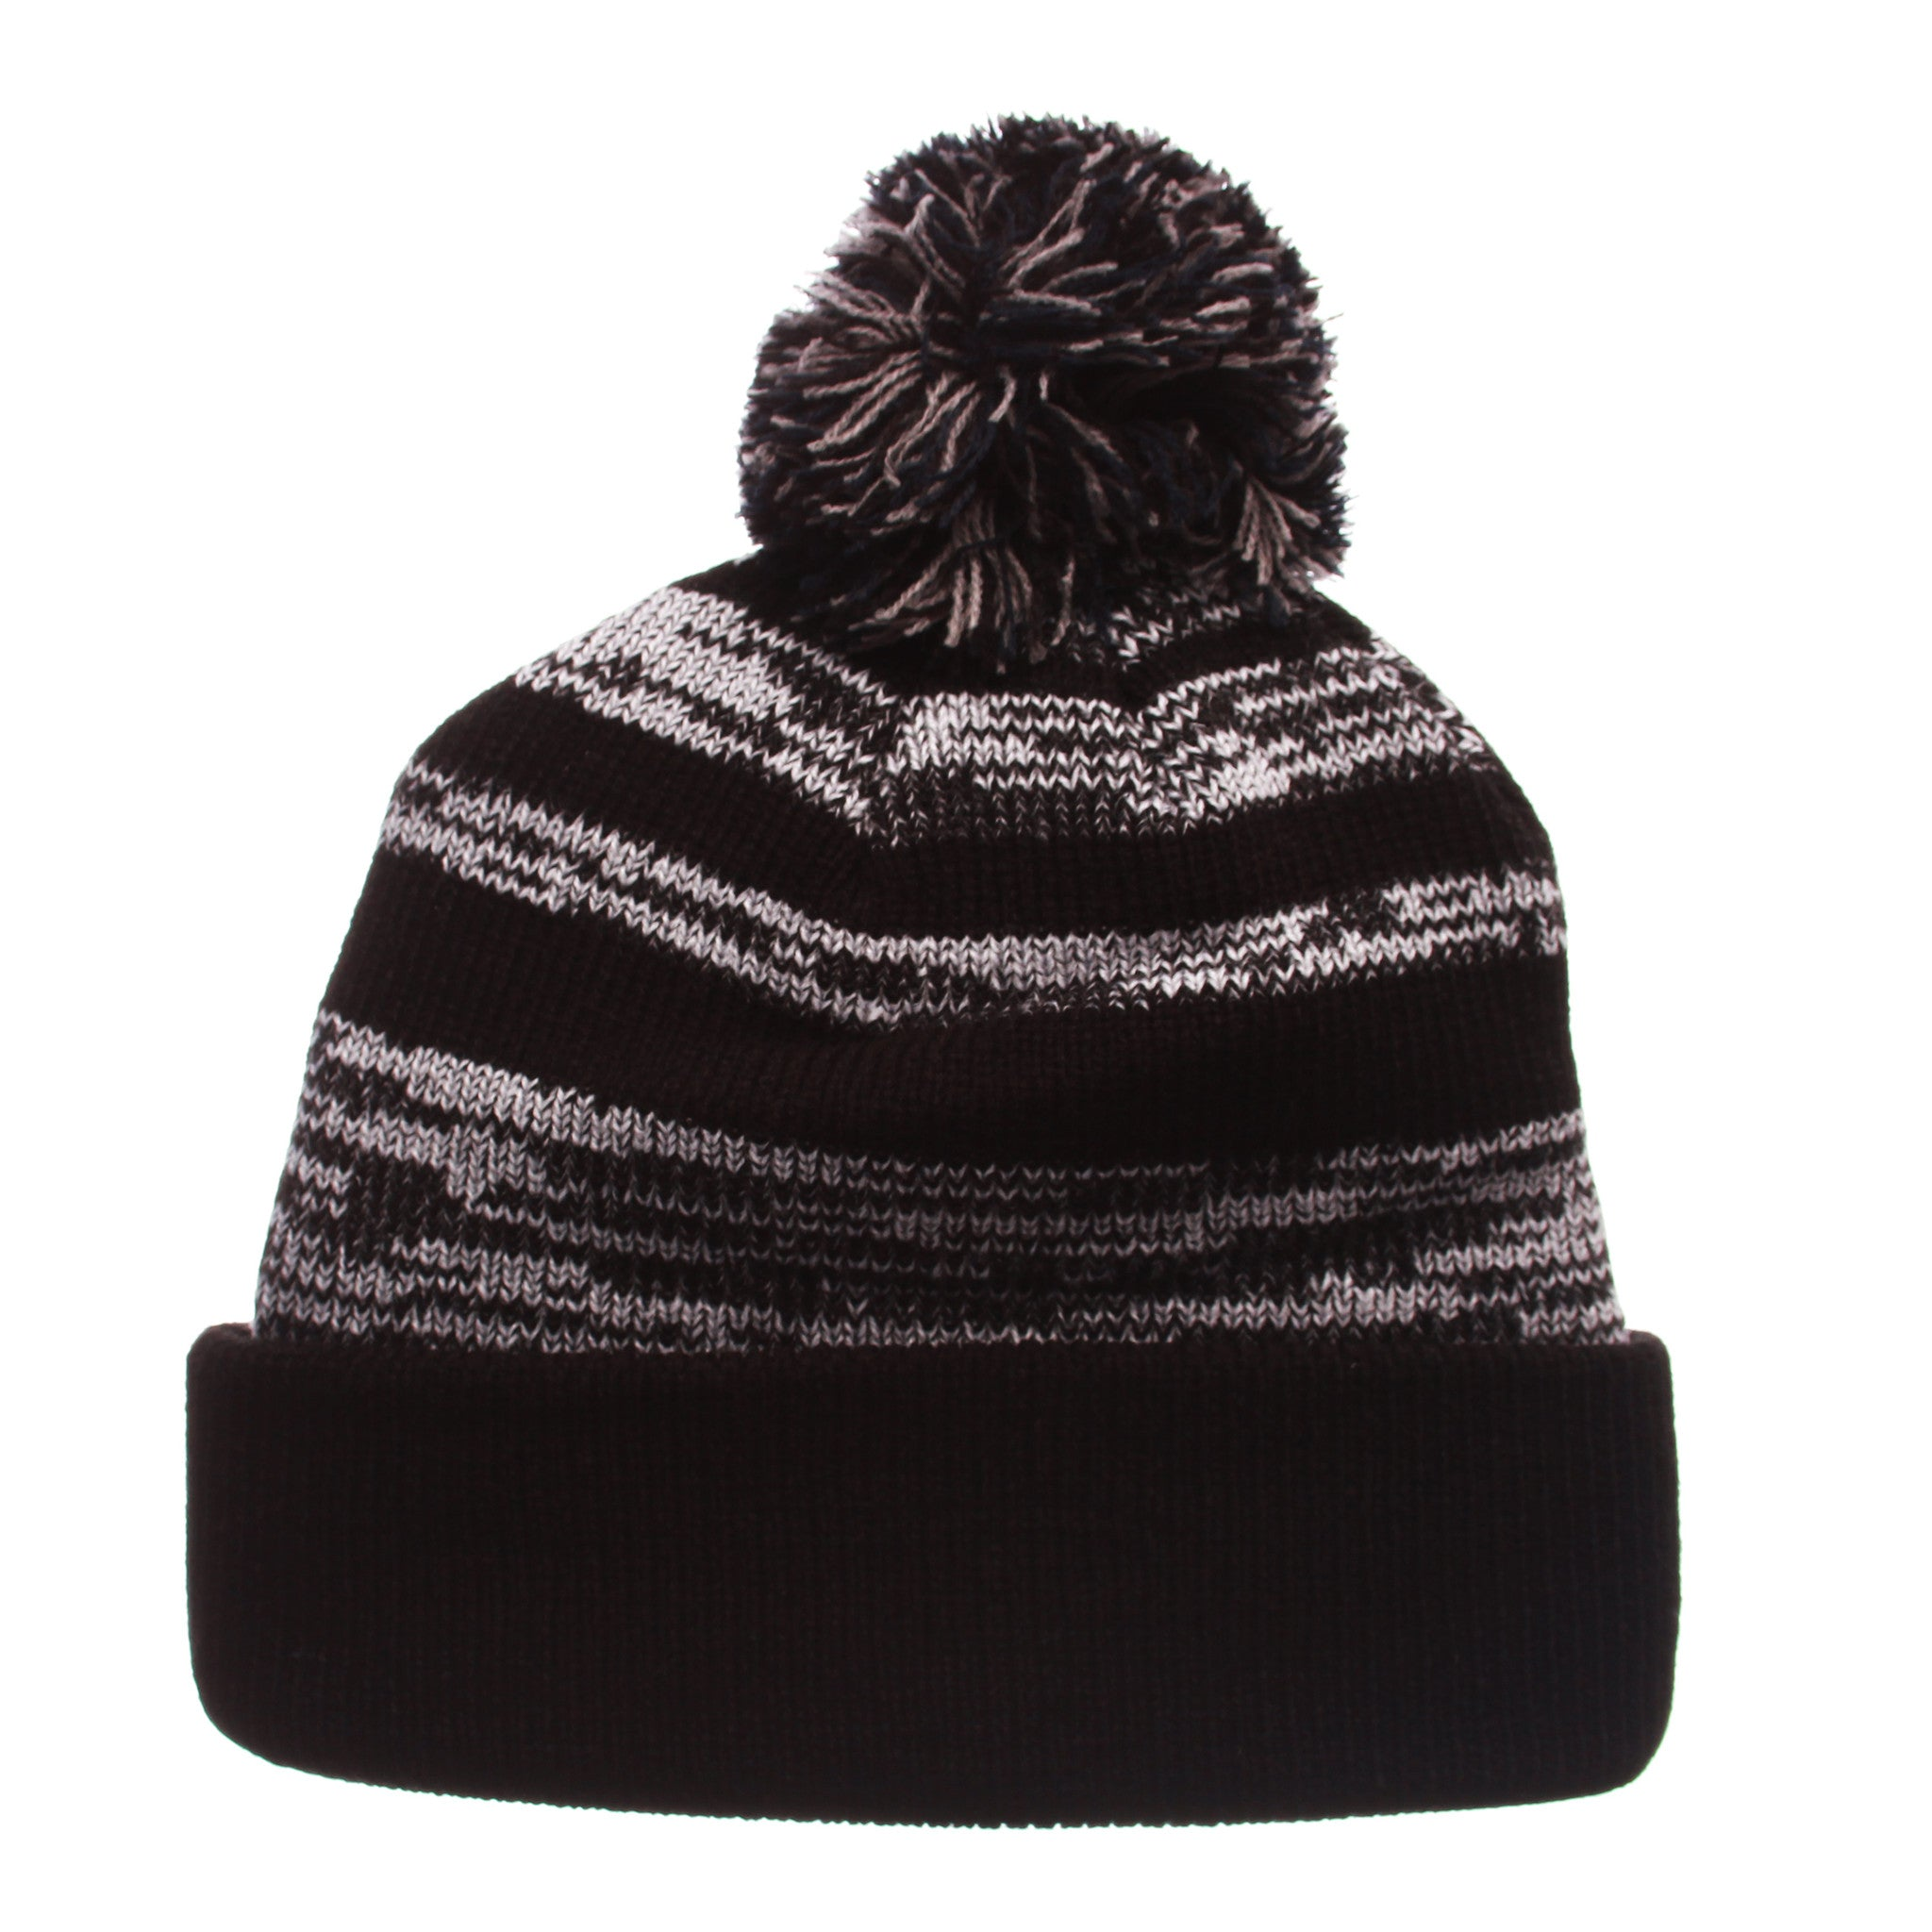 Brigham Young University Black Baron Knit (Fold) (OVAL Y) Black/White/Gray Confederate Knit Adjustable hats by Zephyr